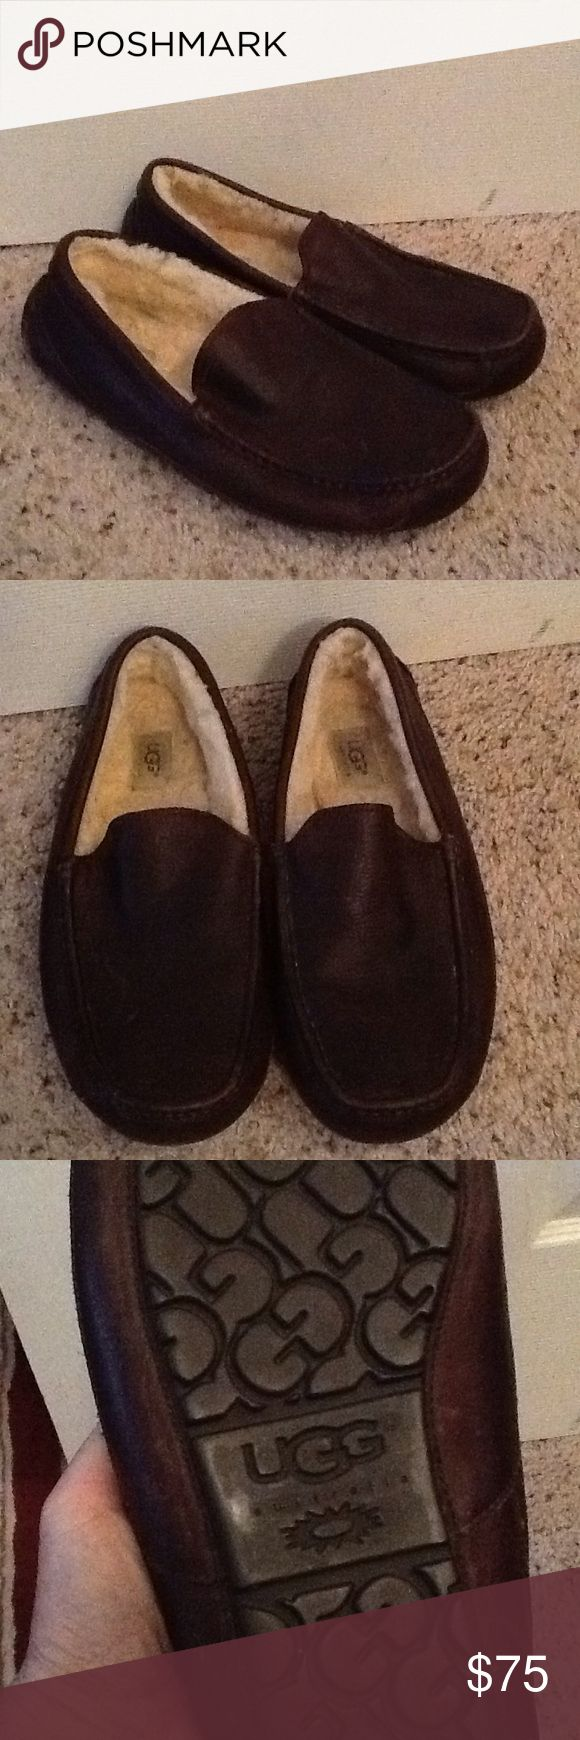 UGG MENS BROWN LEATHER SLIPPERS CAR SHOES sz 12 UGG sz 12 US mens brown leather slippers/ car shoes.  Worn just twice in the house,  Excellent condition.  Bottoms are near new.  UGG logo adorns the entire bottom sole.  Great slippers.  Will ship right away.  Check out my other designer items UGG Shoes Loafers & Slip-Ons